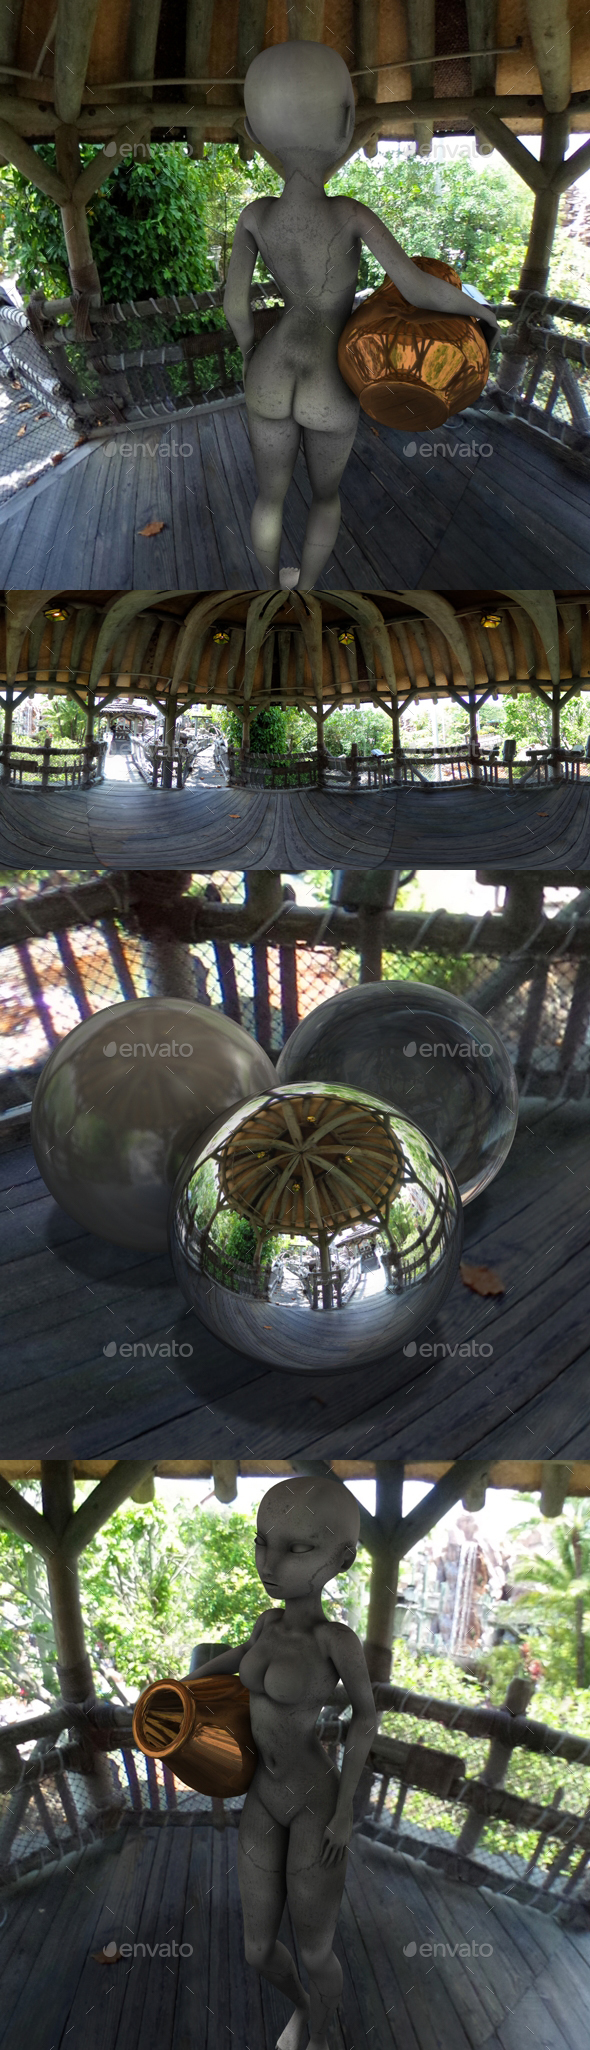 Jungle Hut Outlook HDRI - 3DOcean Item for Sale